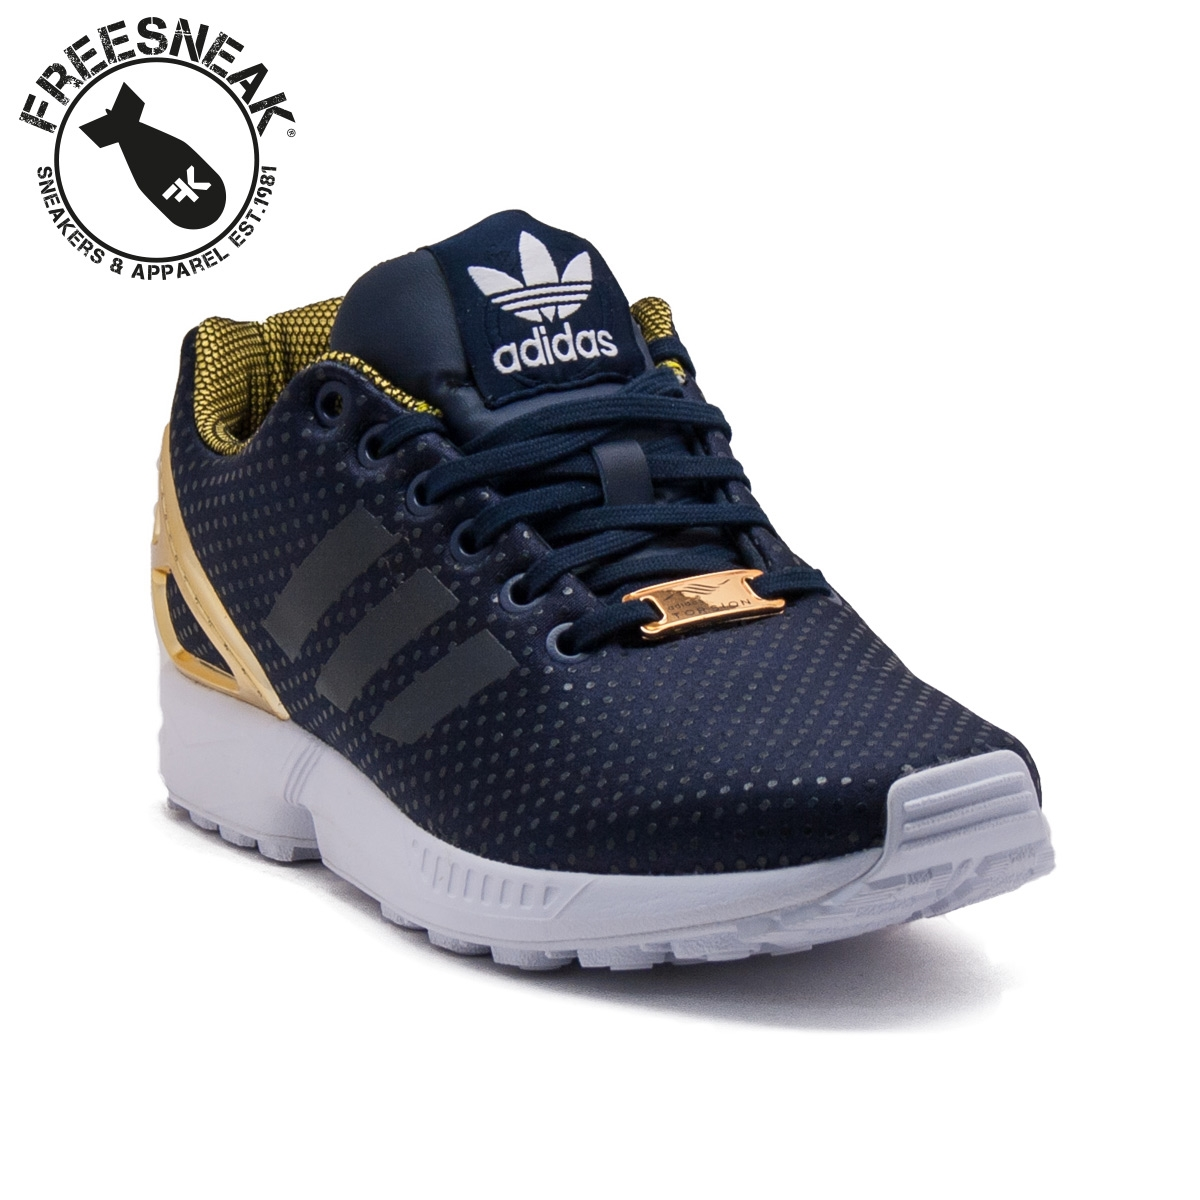 adidas zx flux nere e dorate